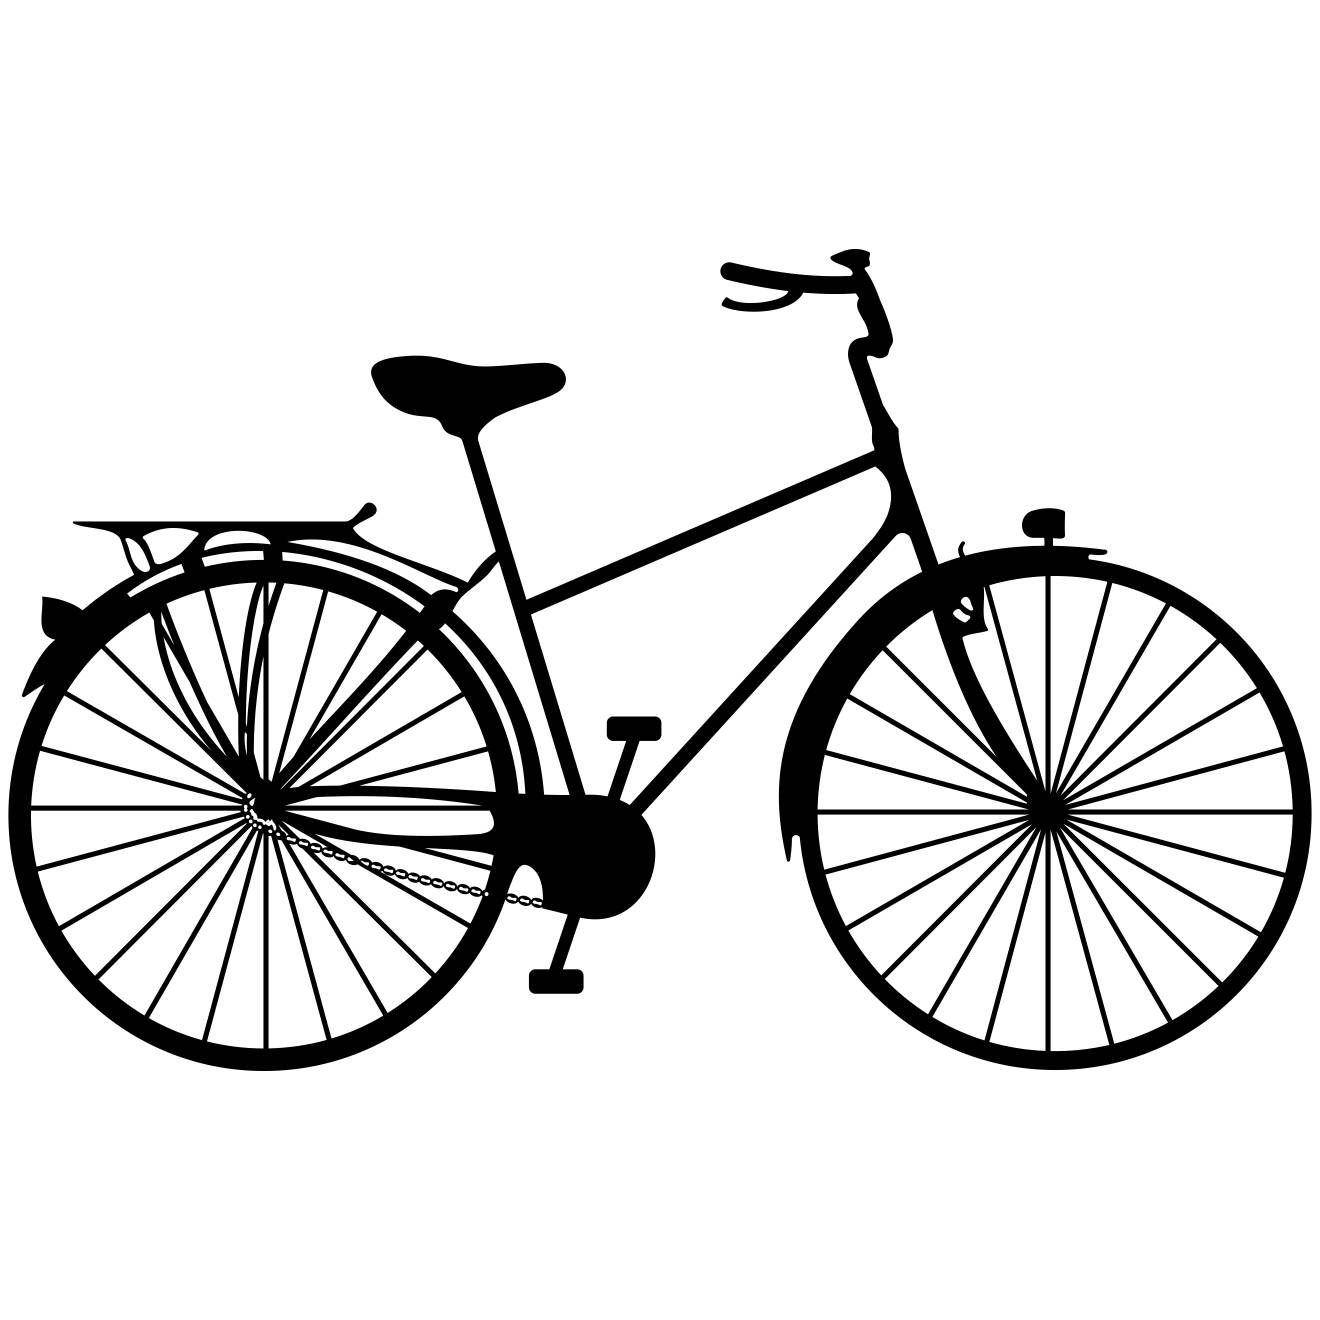 Bicycle Ride A Bike Graphics Svg Dxf Eps Cdr Ai